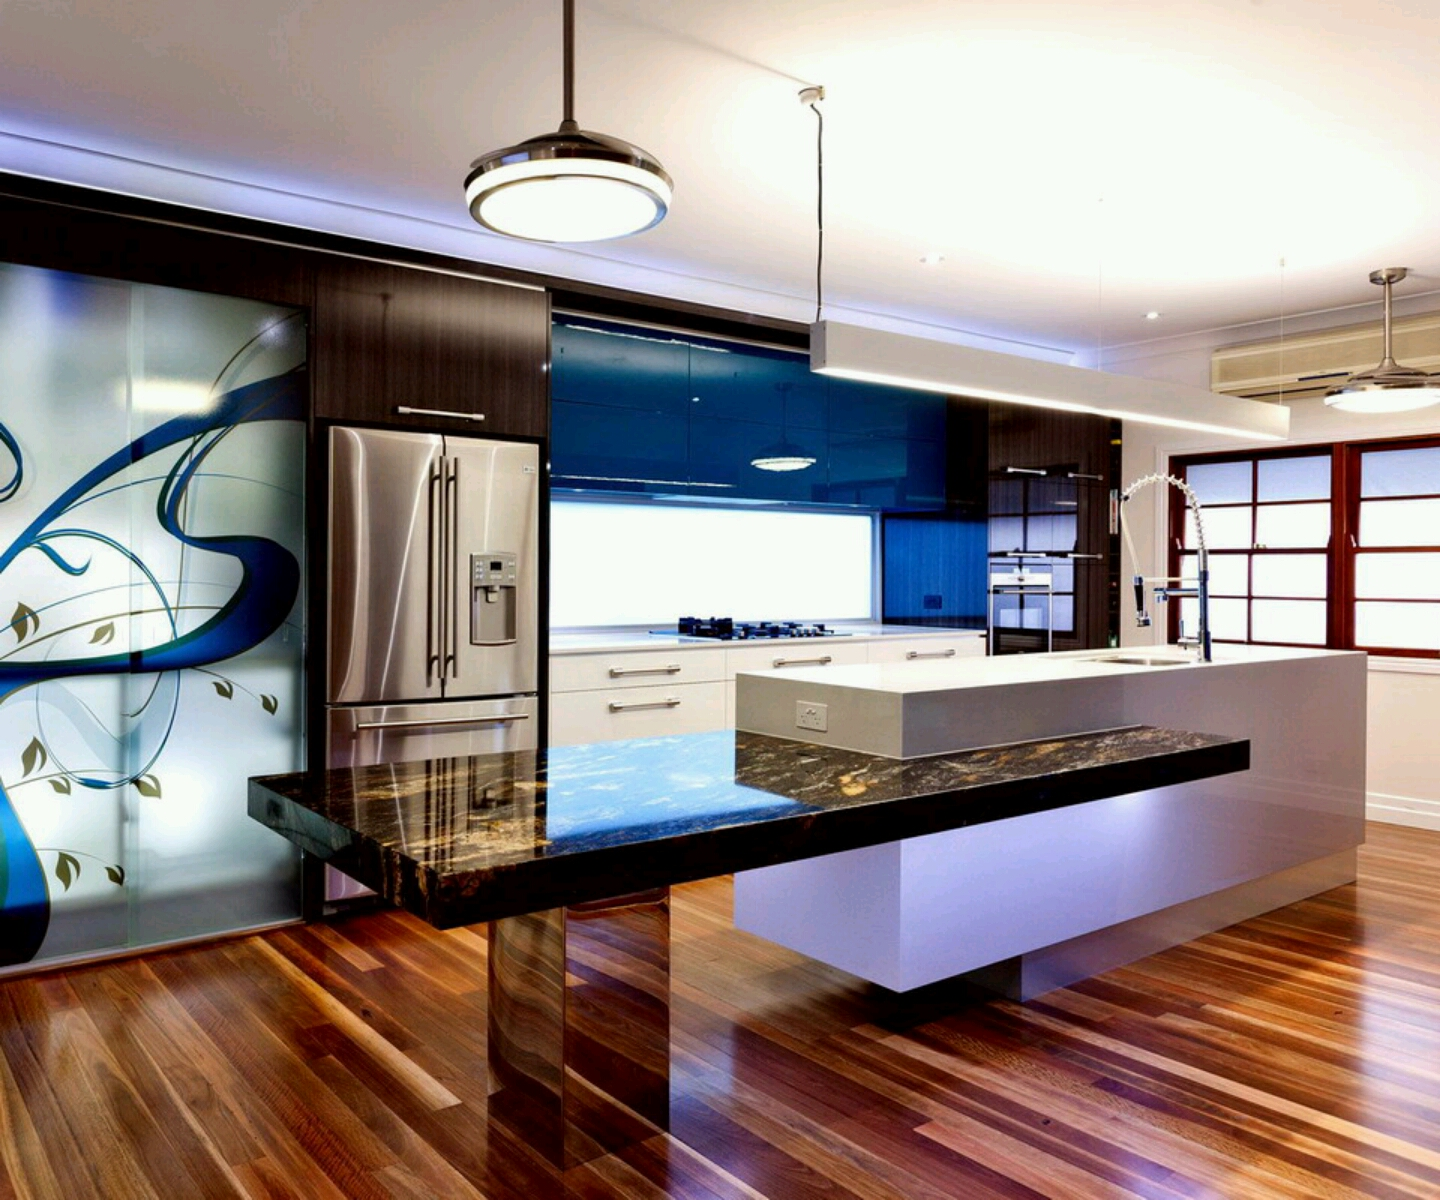 Ultra modern kitchen designs ideas new home designs Design home modern